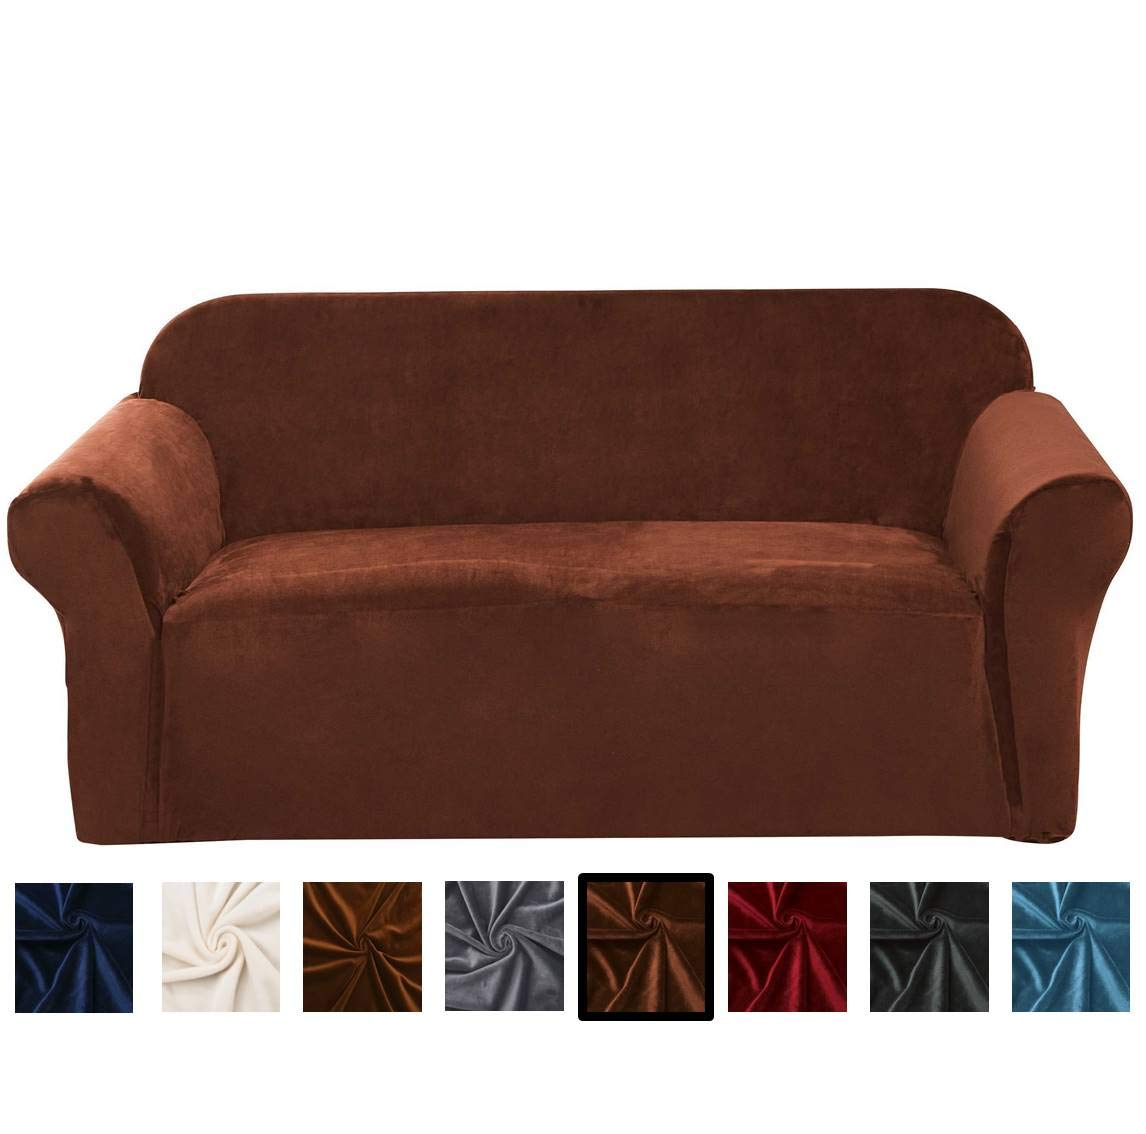 Strange Argstar Velvet Couch Cover Durable Stretch Sofa Covers And Couch Protector Walnut Brown Pabps2019 Chair Design Images Pabps2019Com